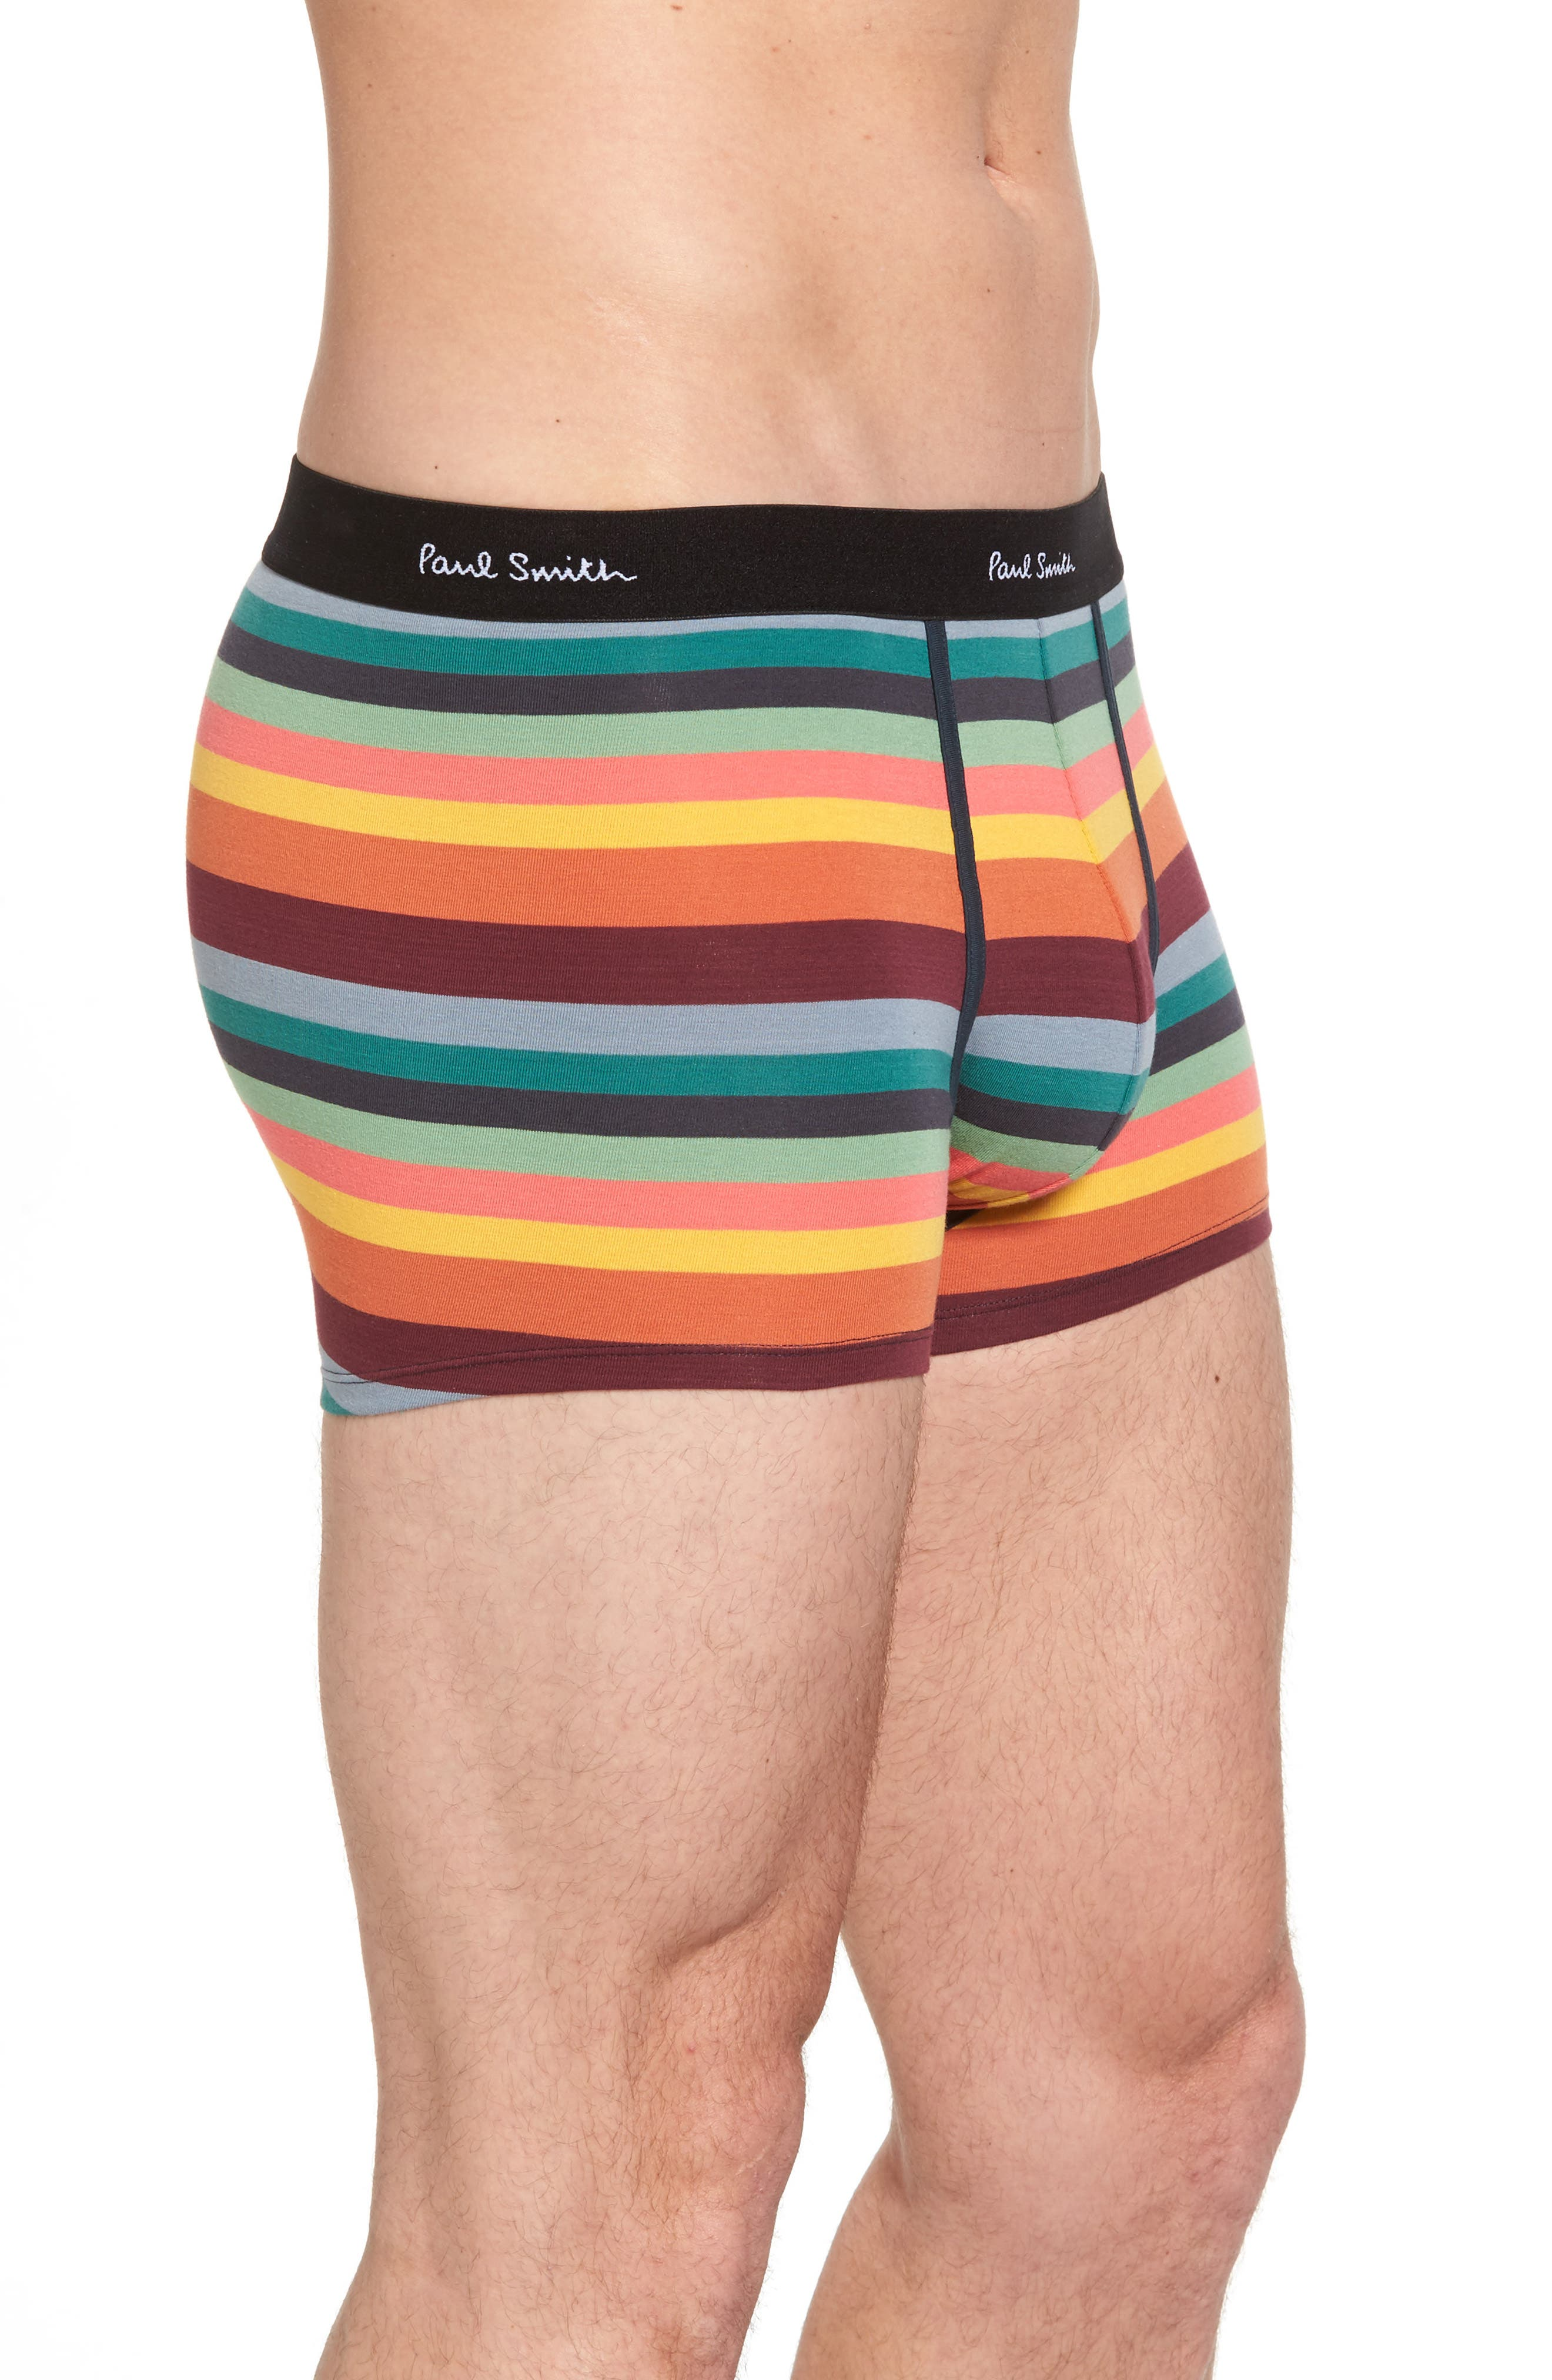 3-Pack Assorted Square Cut Trunks,                             Alternate thumbnail 4, color,                             012